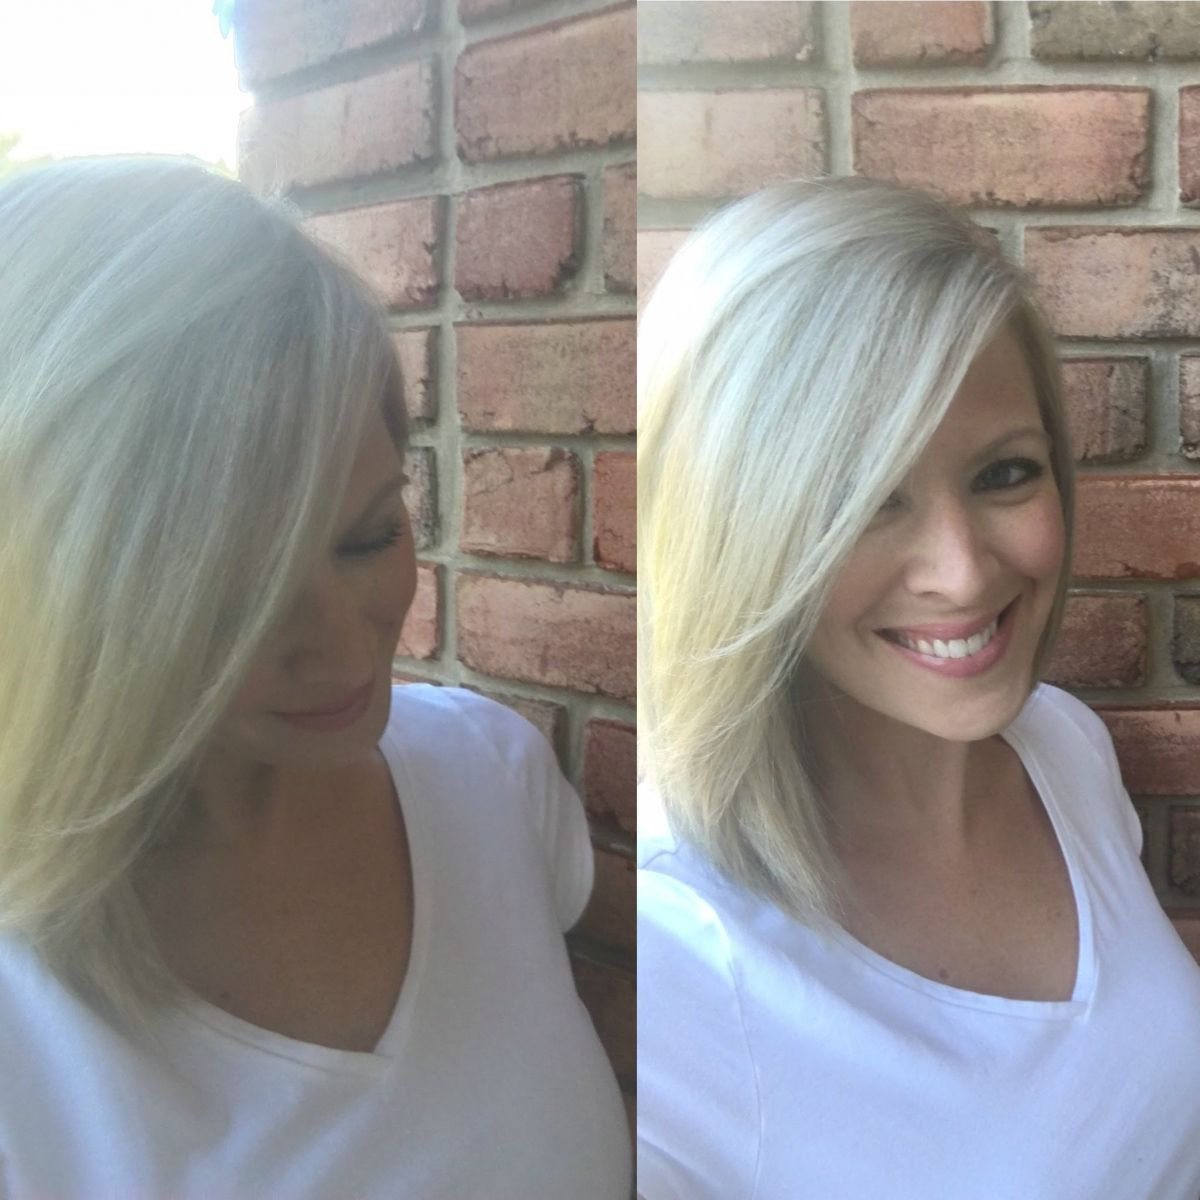 Color Hair Blonde At Home Best Off The Shelf Hair Color Check More At Http Frenzyhairstudio Com Color Hair Blonde At Home